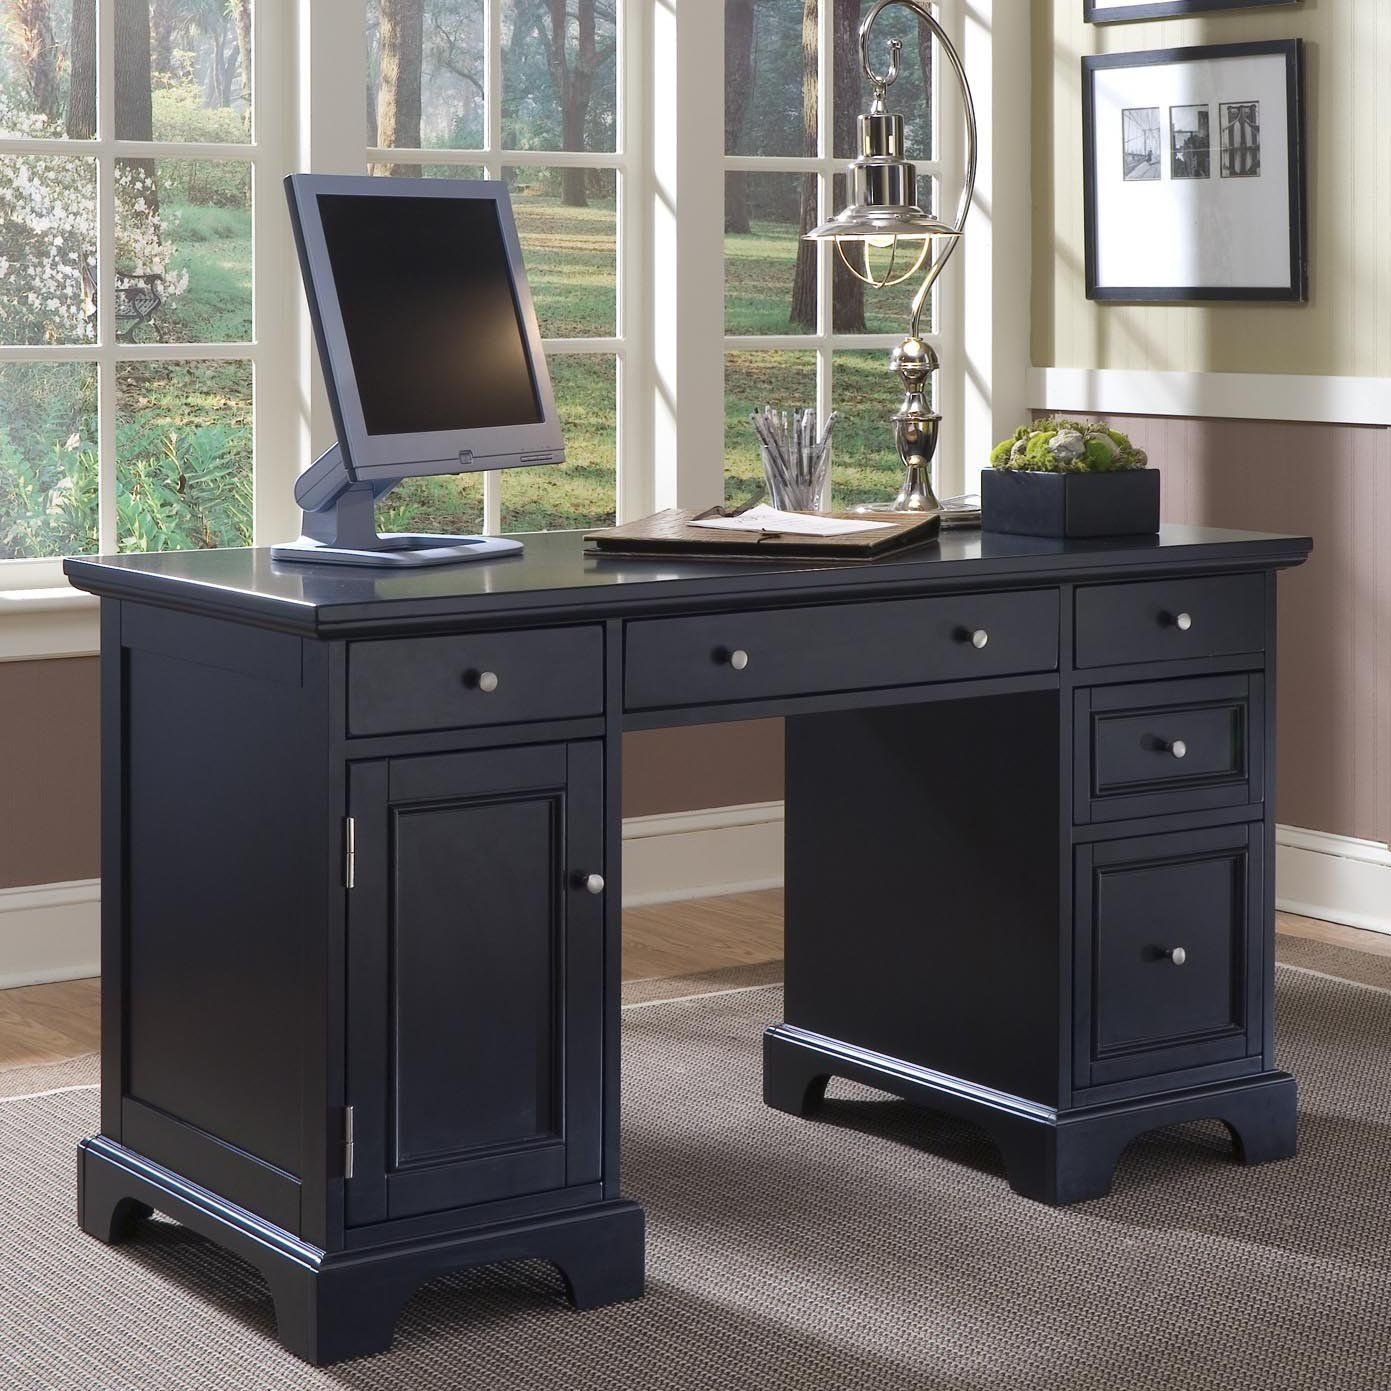 furniture for computers at home. Home Styles Bedford Pedestal Computer Desk - $488.98 @hayneedle. Furniture For Computers At Home